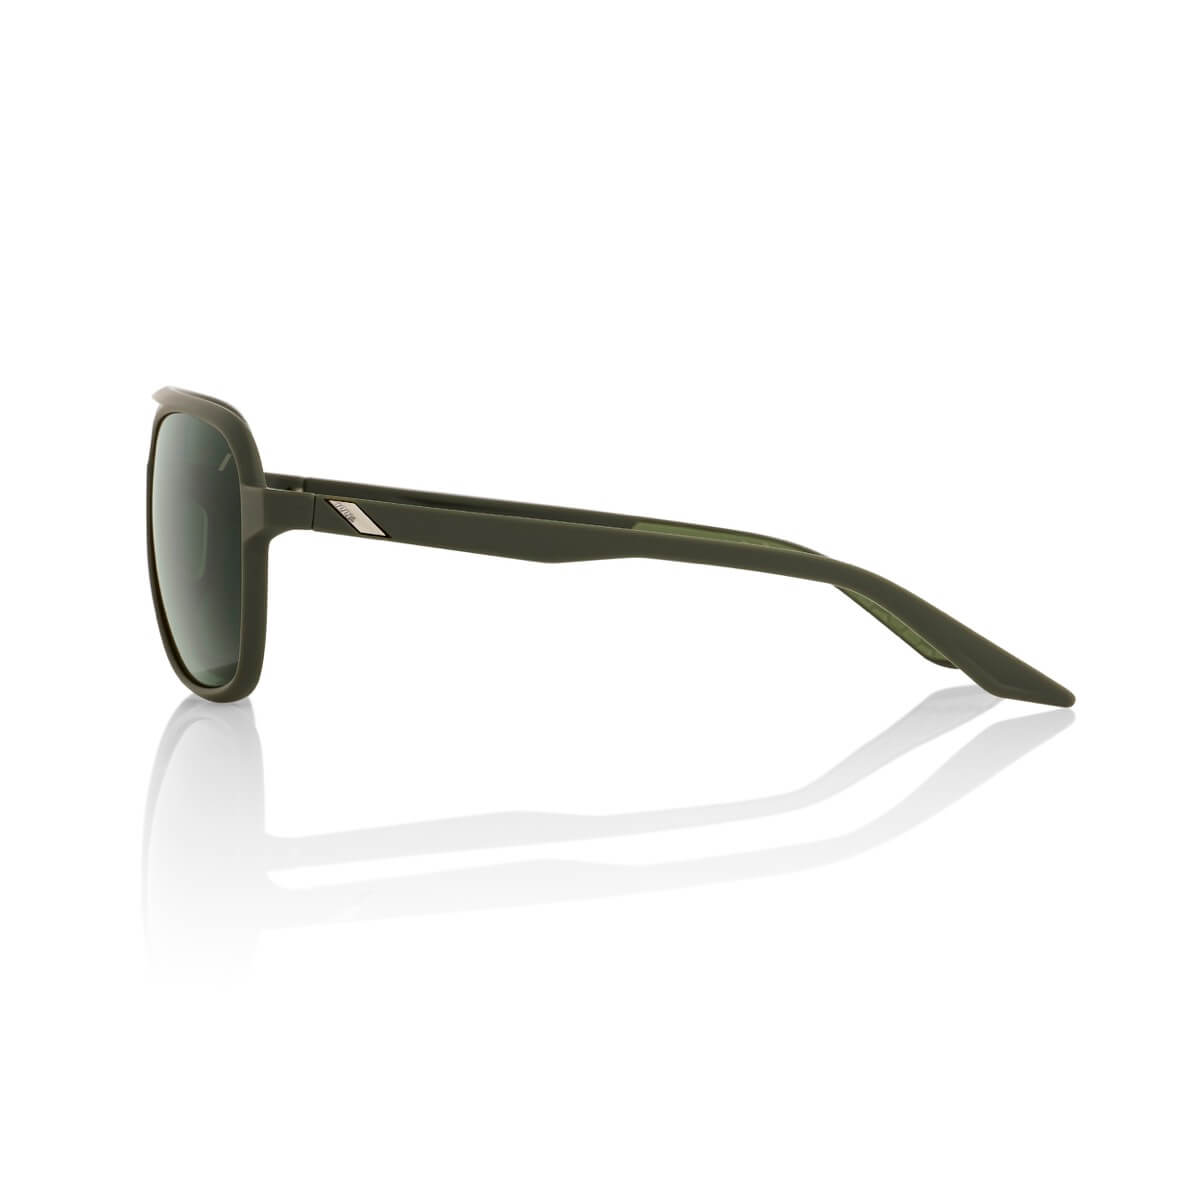 KASIA Aviator Round – Soft Tact Army Green – Grey Green Lens